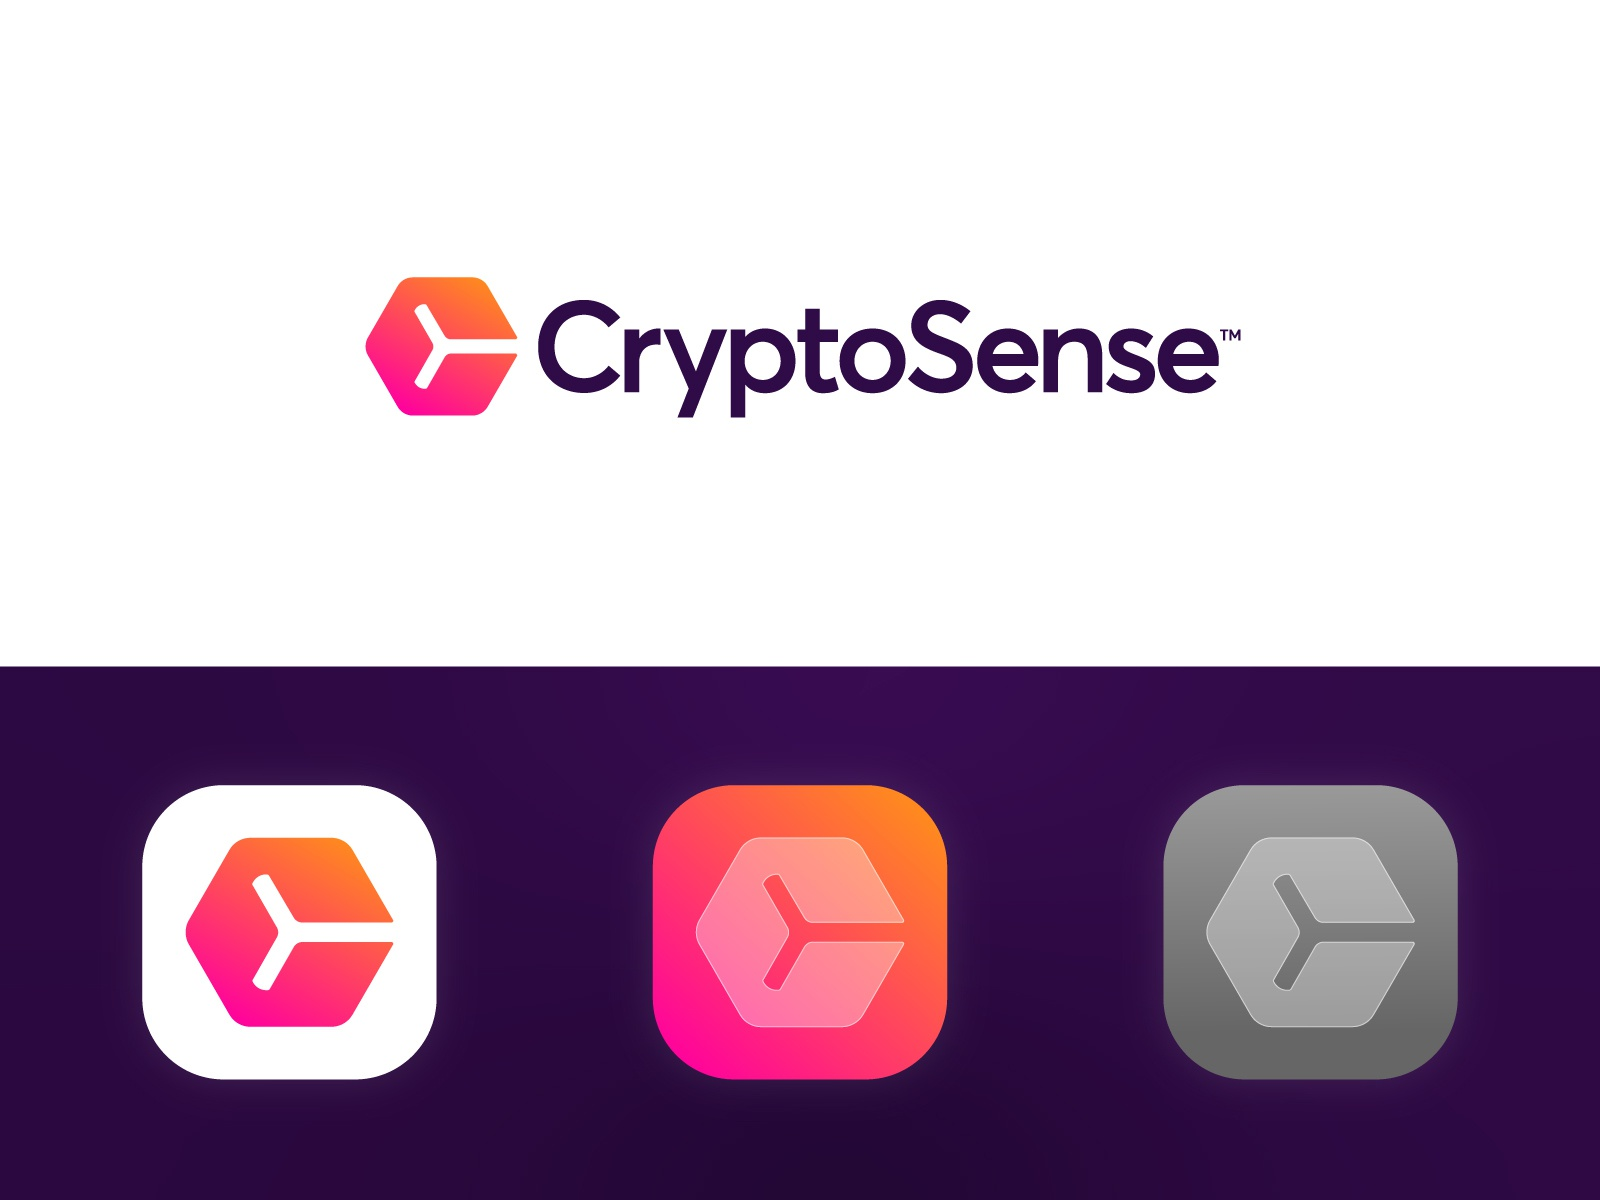 CryptoSense - Logo Design hexagon cube application app channel news vibe mood sense gradient branding identity logo monogram c market stock cryptocurrency currency crypto